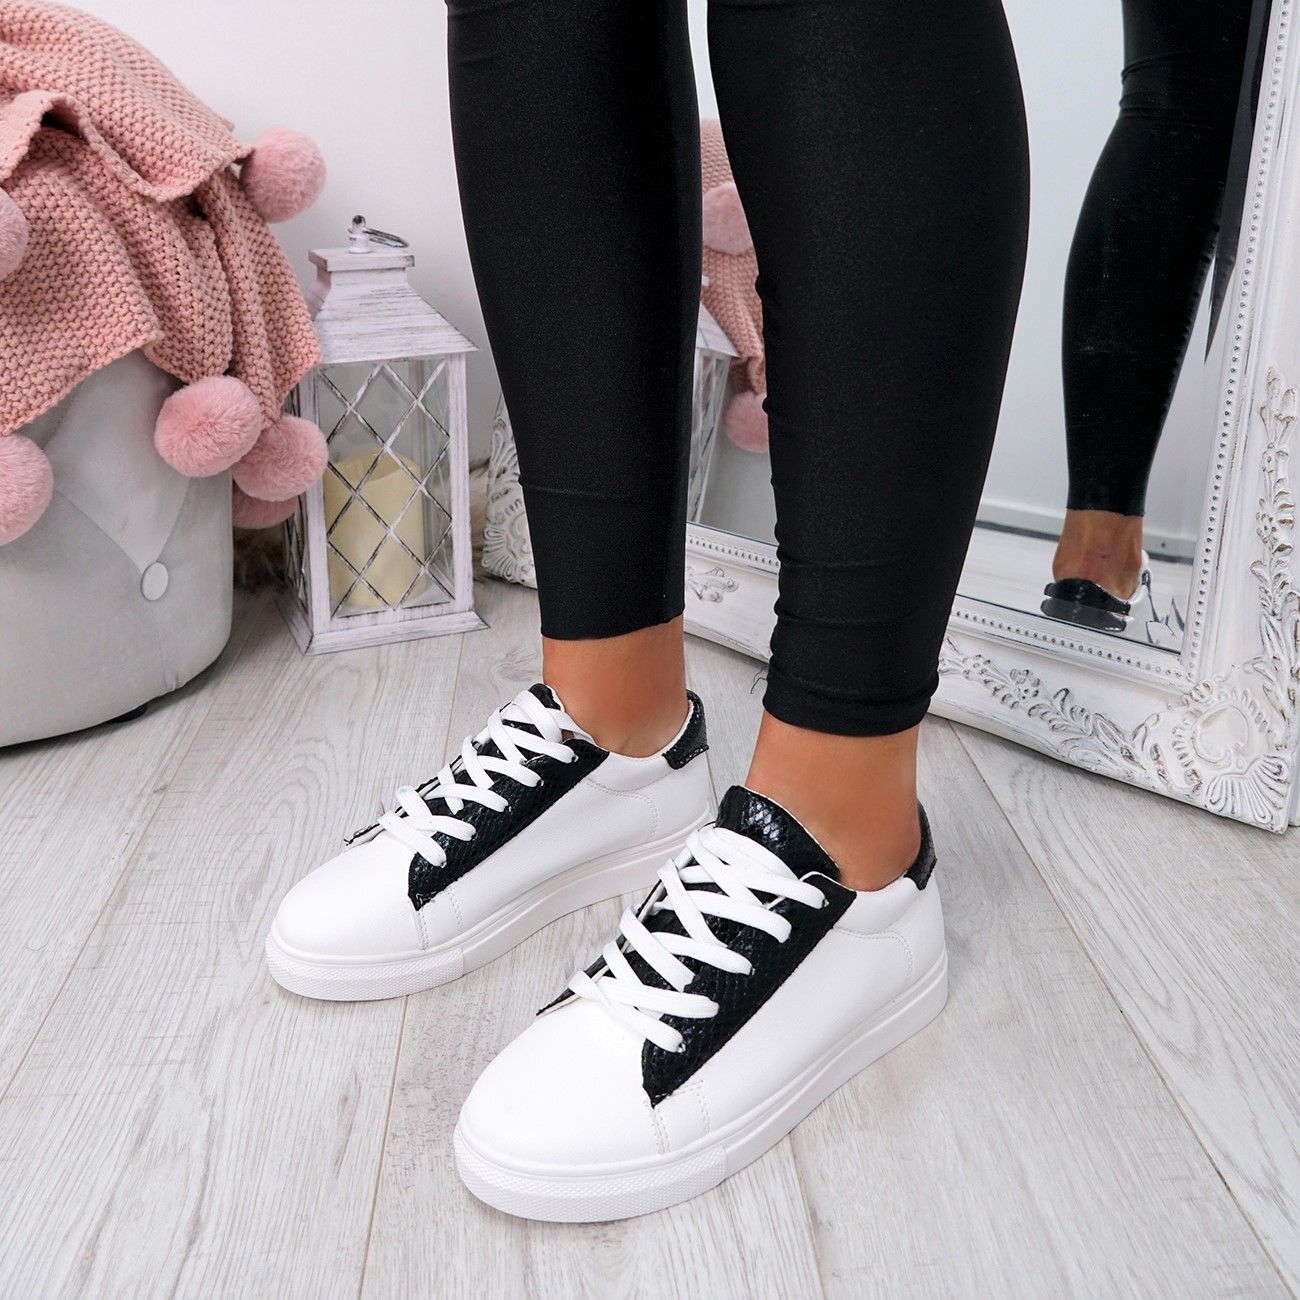 WOMENS-LADIES-SNAKE-SKIN-GLITTER-LACE-UP-TRAINERS-PLIMSOLLS-SNEAKERS-SHOES thumbnail 10